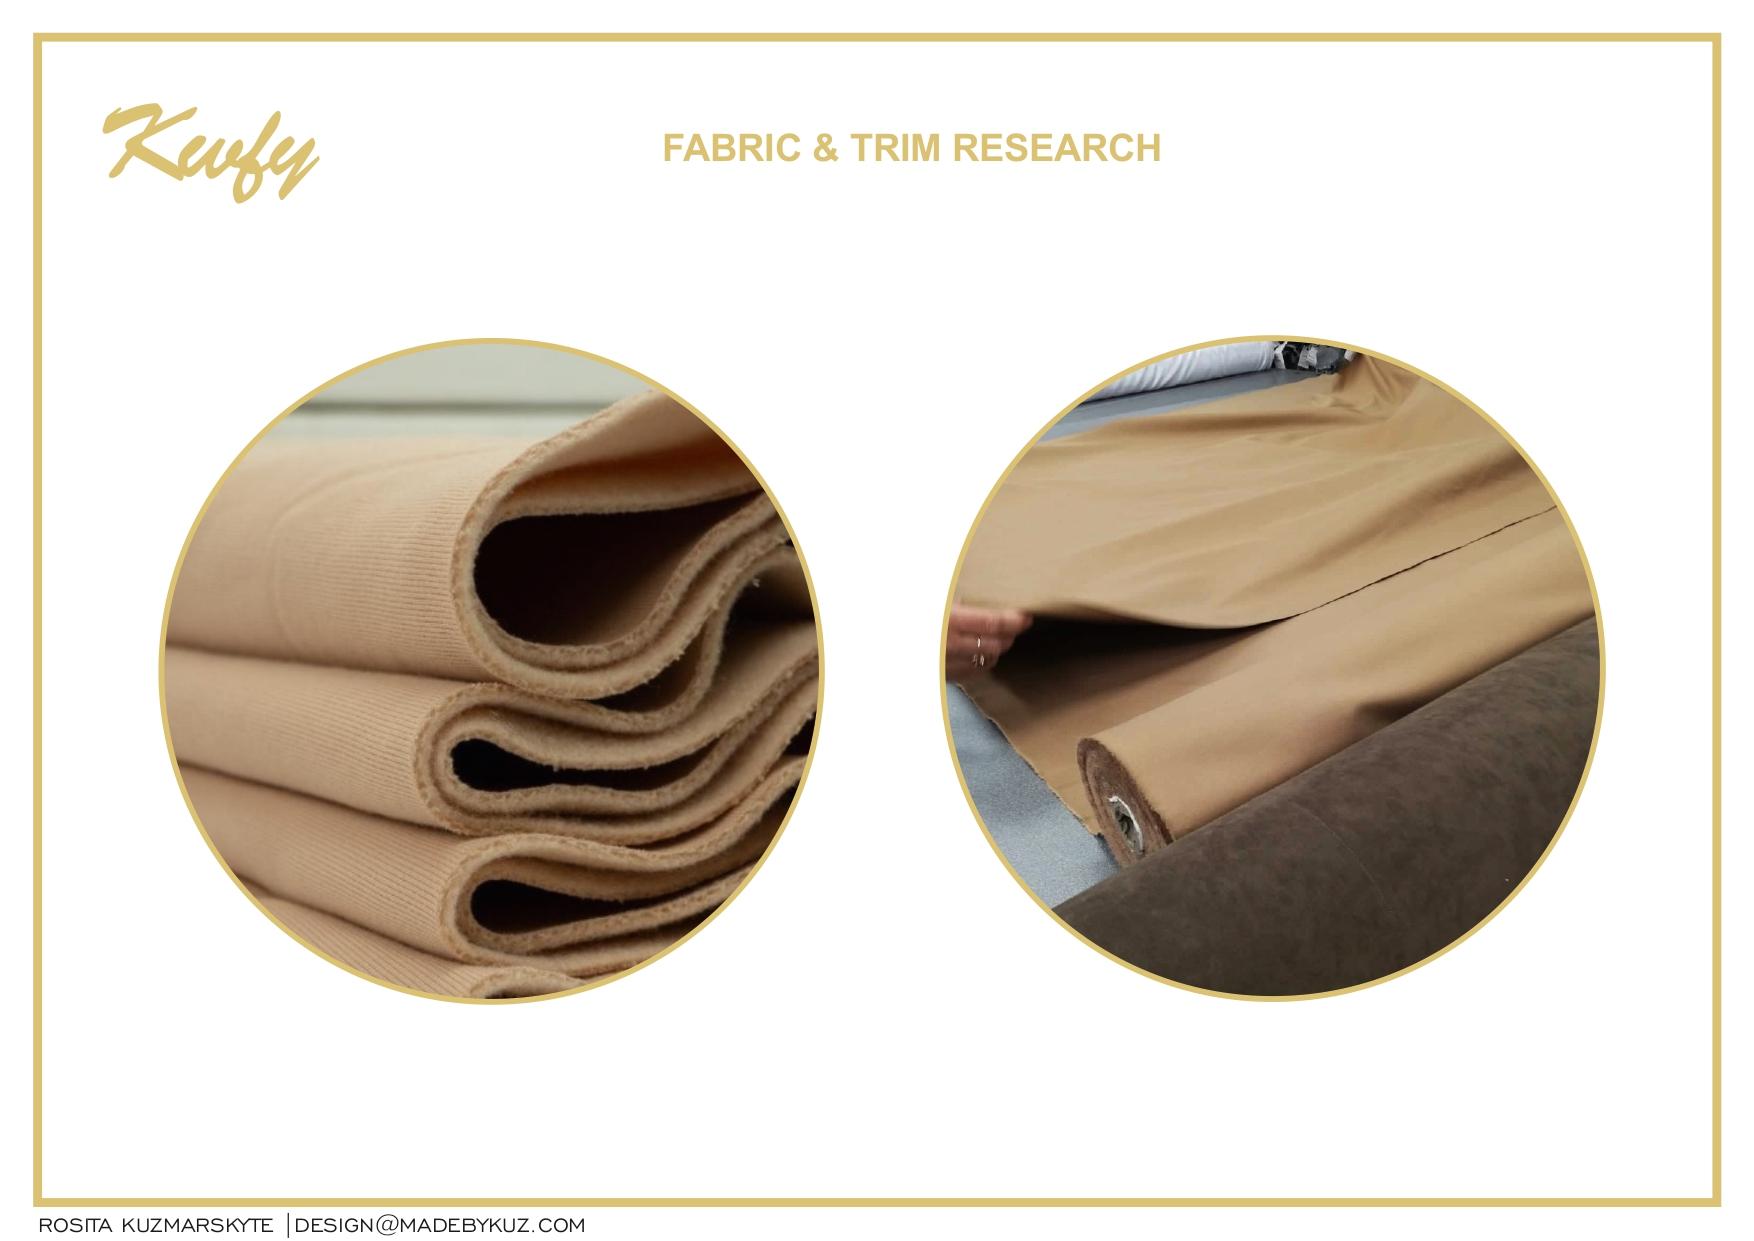 Fabric & Trim research